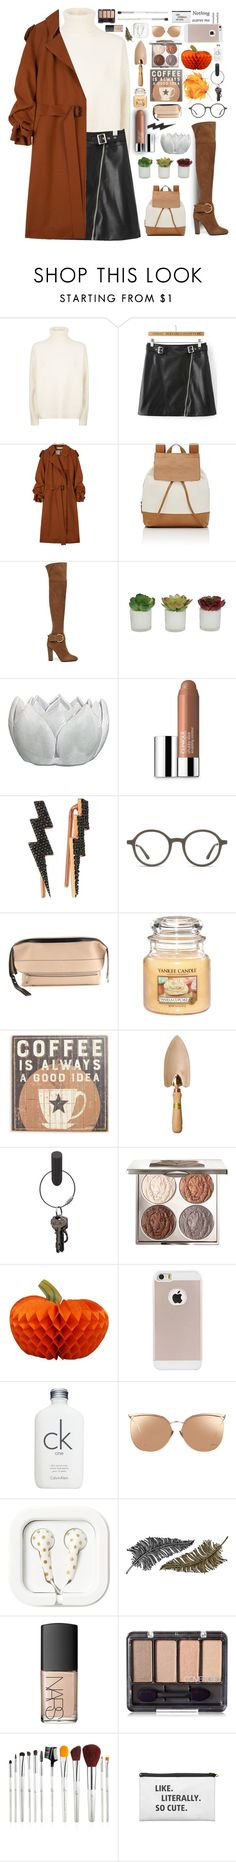 """""""Feels Like Fall"""" by milkshakes-and-dogs ❤ liked on Polyvore featuring Vince, WithChic, Marni, Barneys New York, Giuseppe Zanotti, Threshold, Clinique, Bee Goddess, Chloé and Primitives By Kathy"""